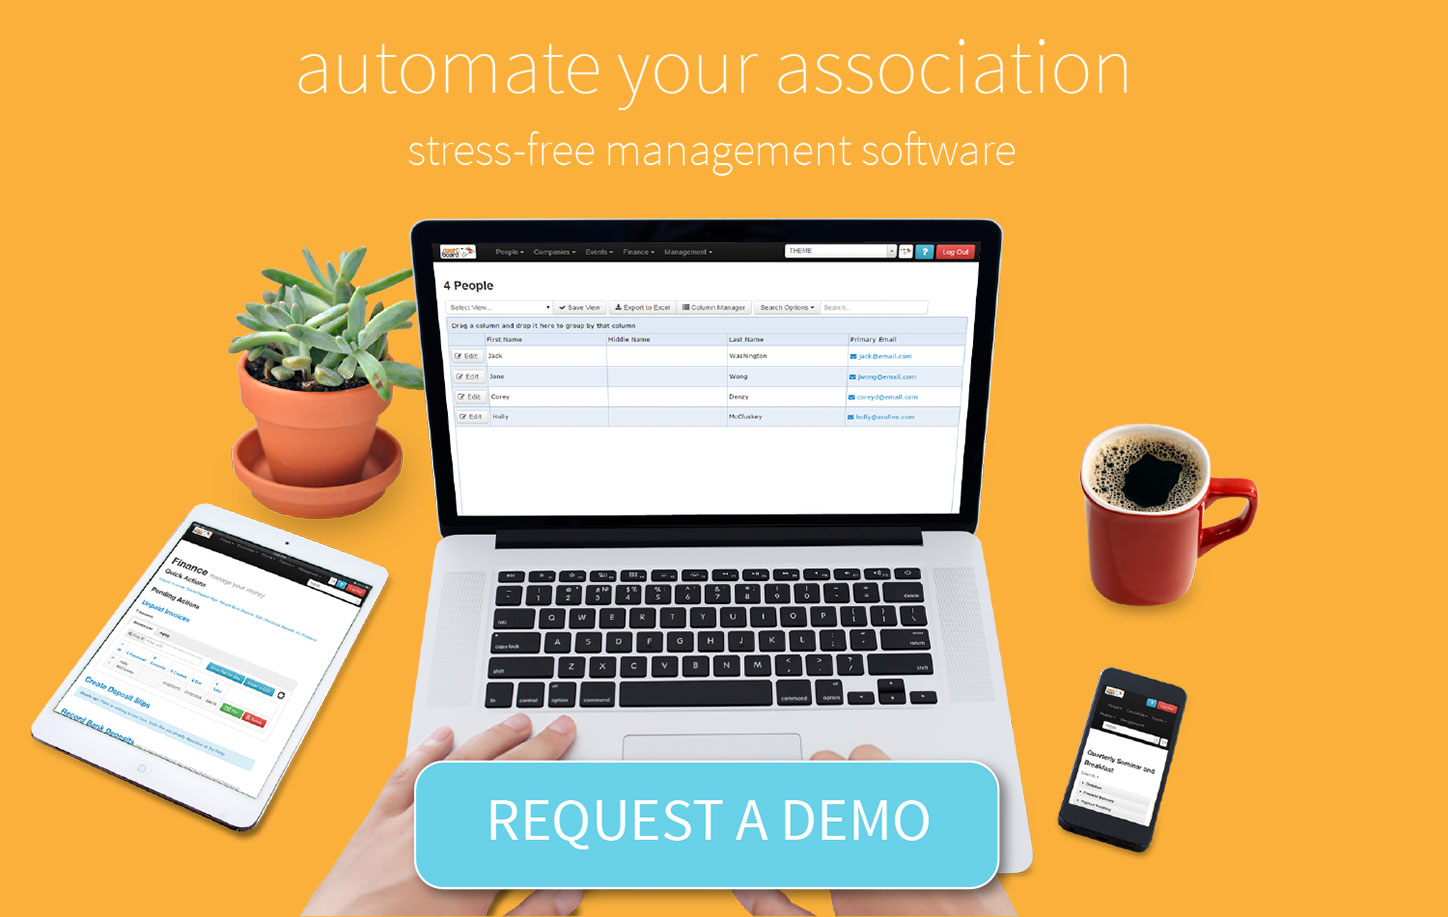 automate_your_association-tablet